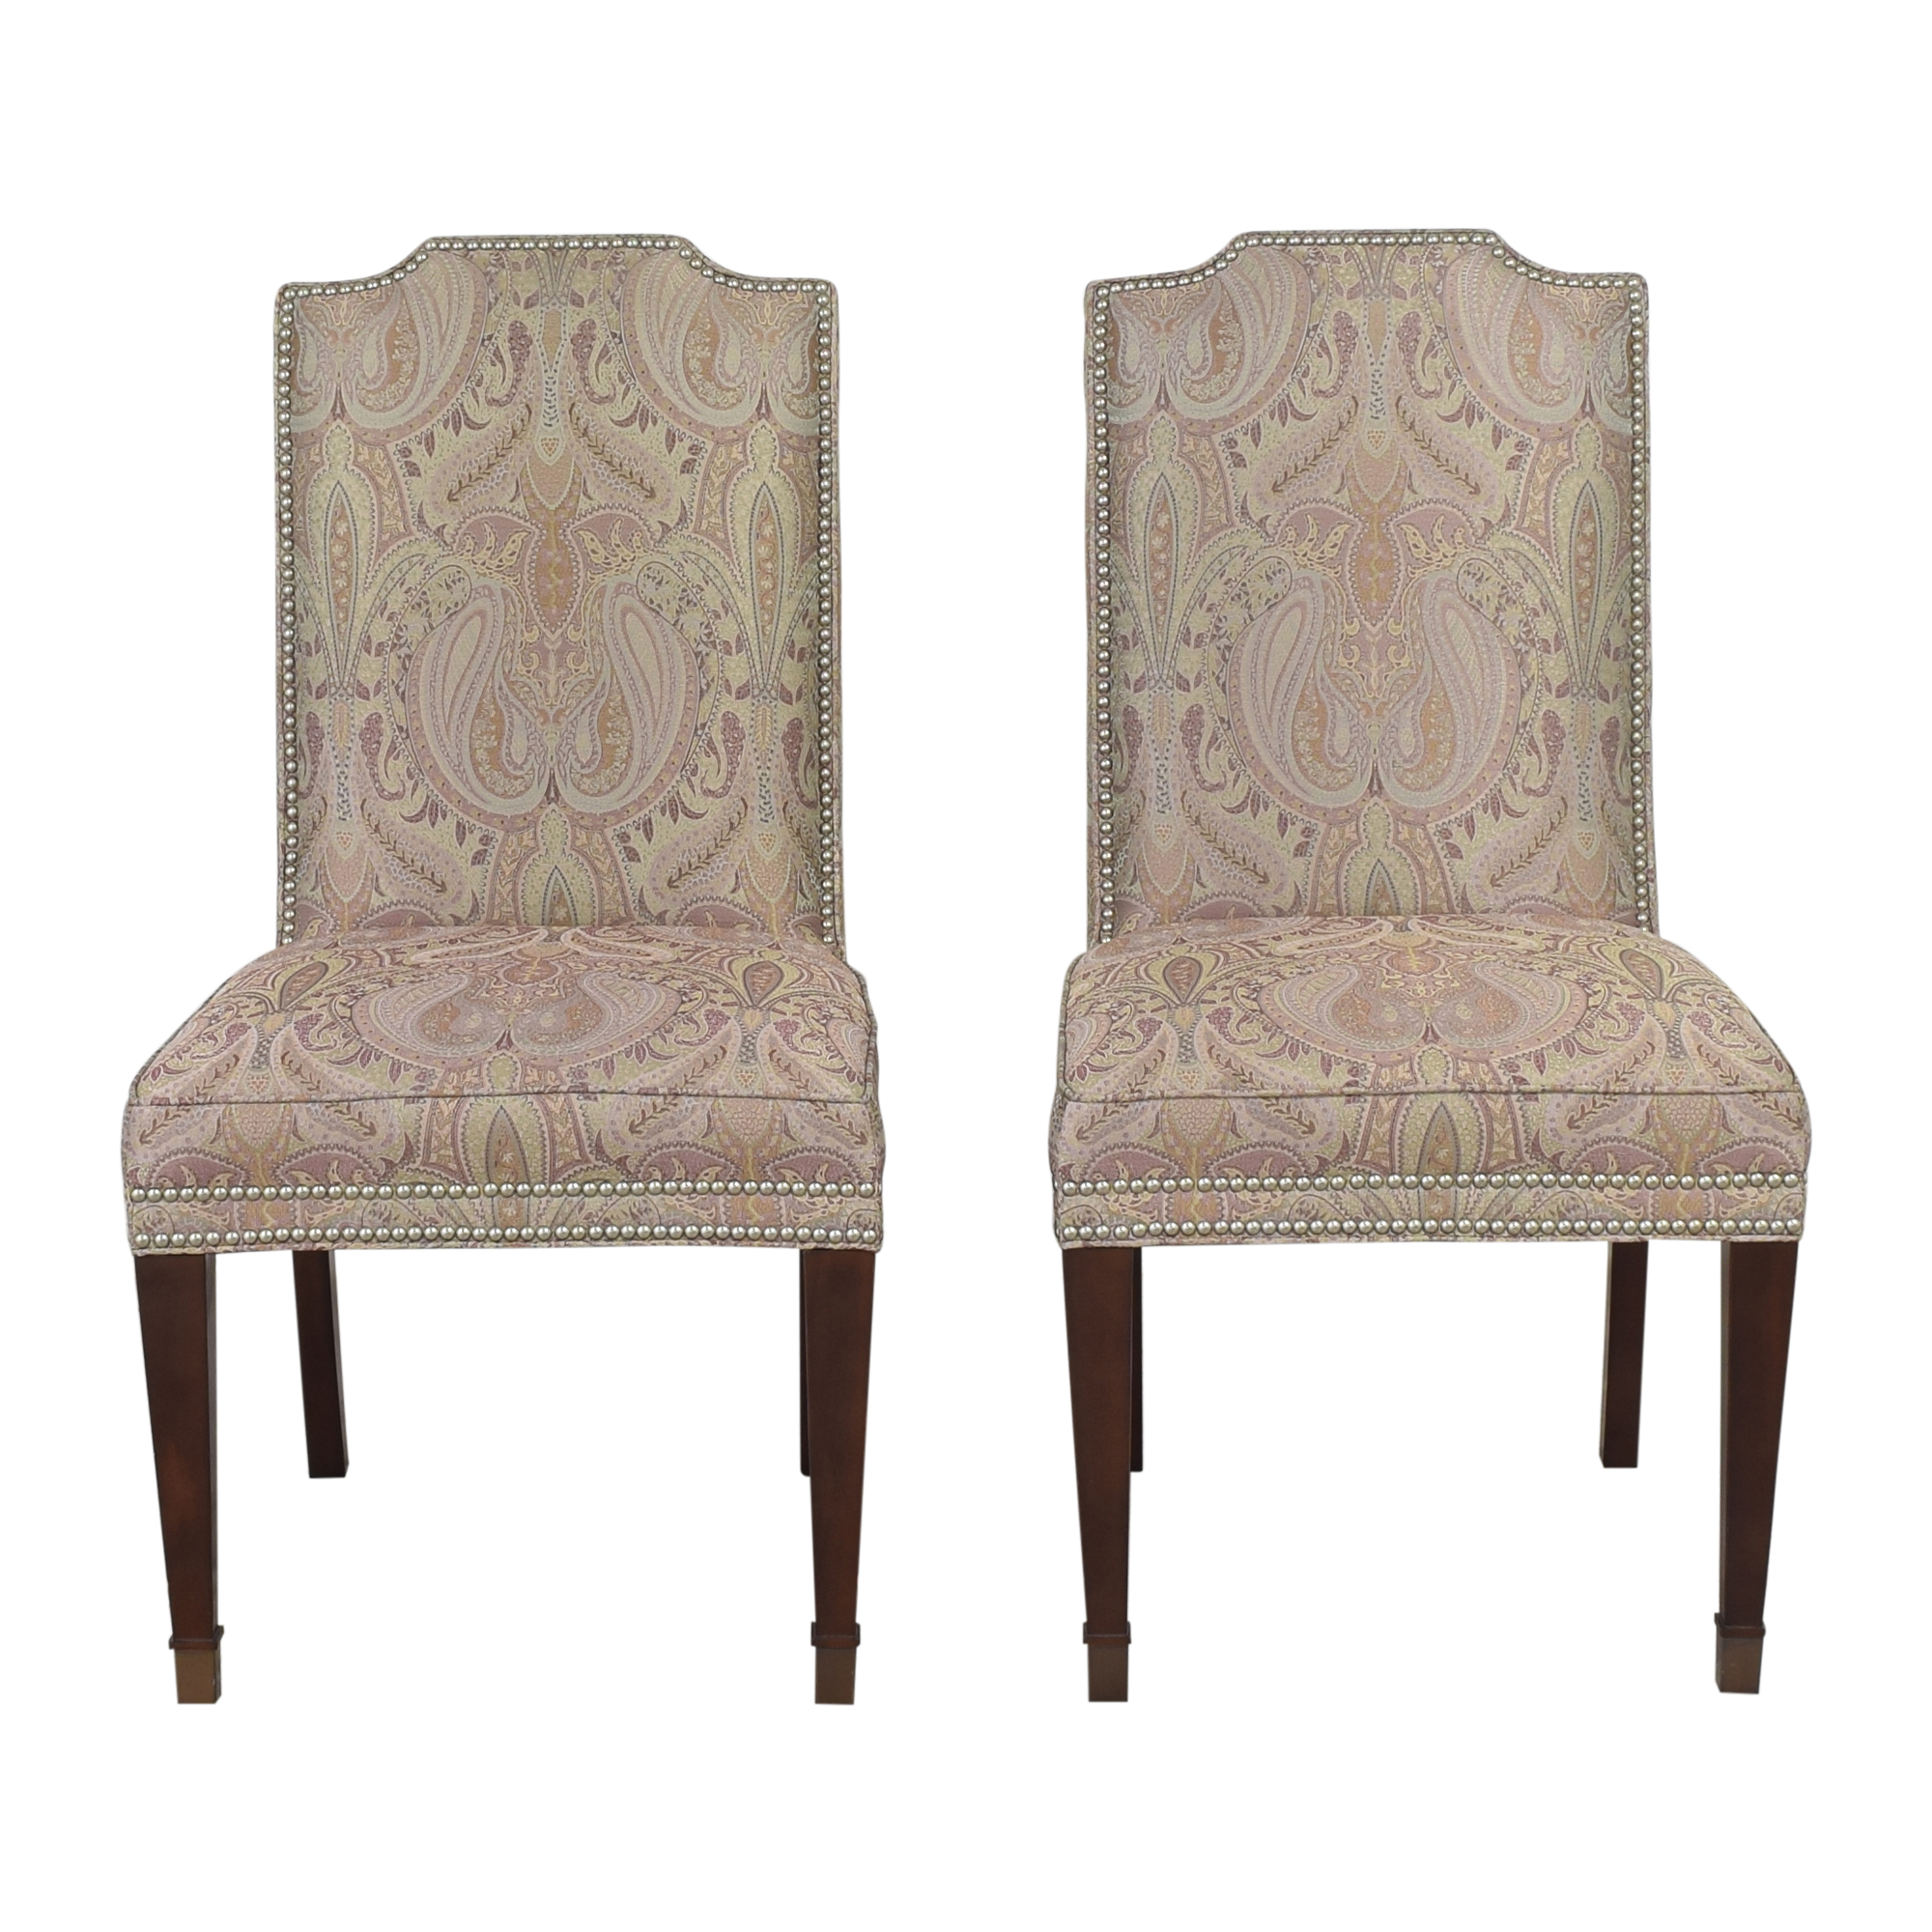 shop Vanguard Furniture Vanguard Furniture by Michael Weiss Travis Dining Side Chairs online